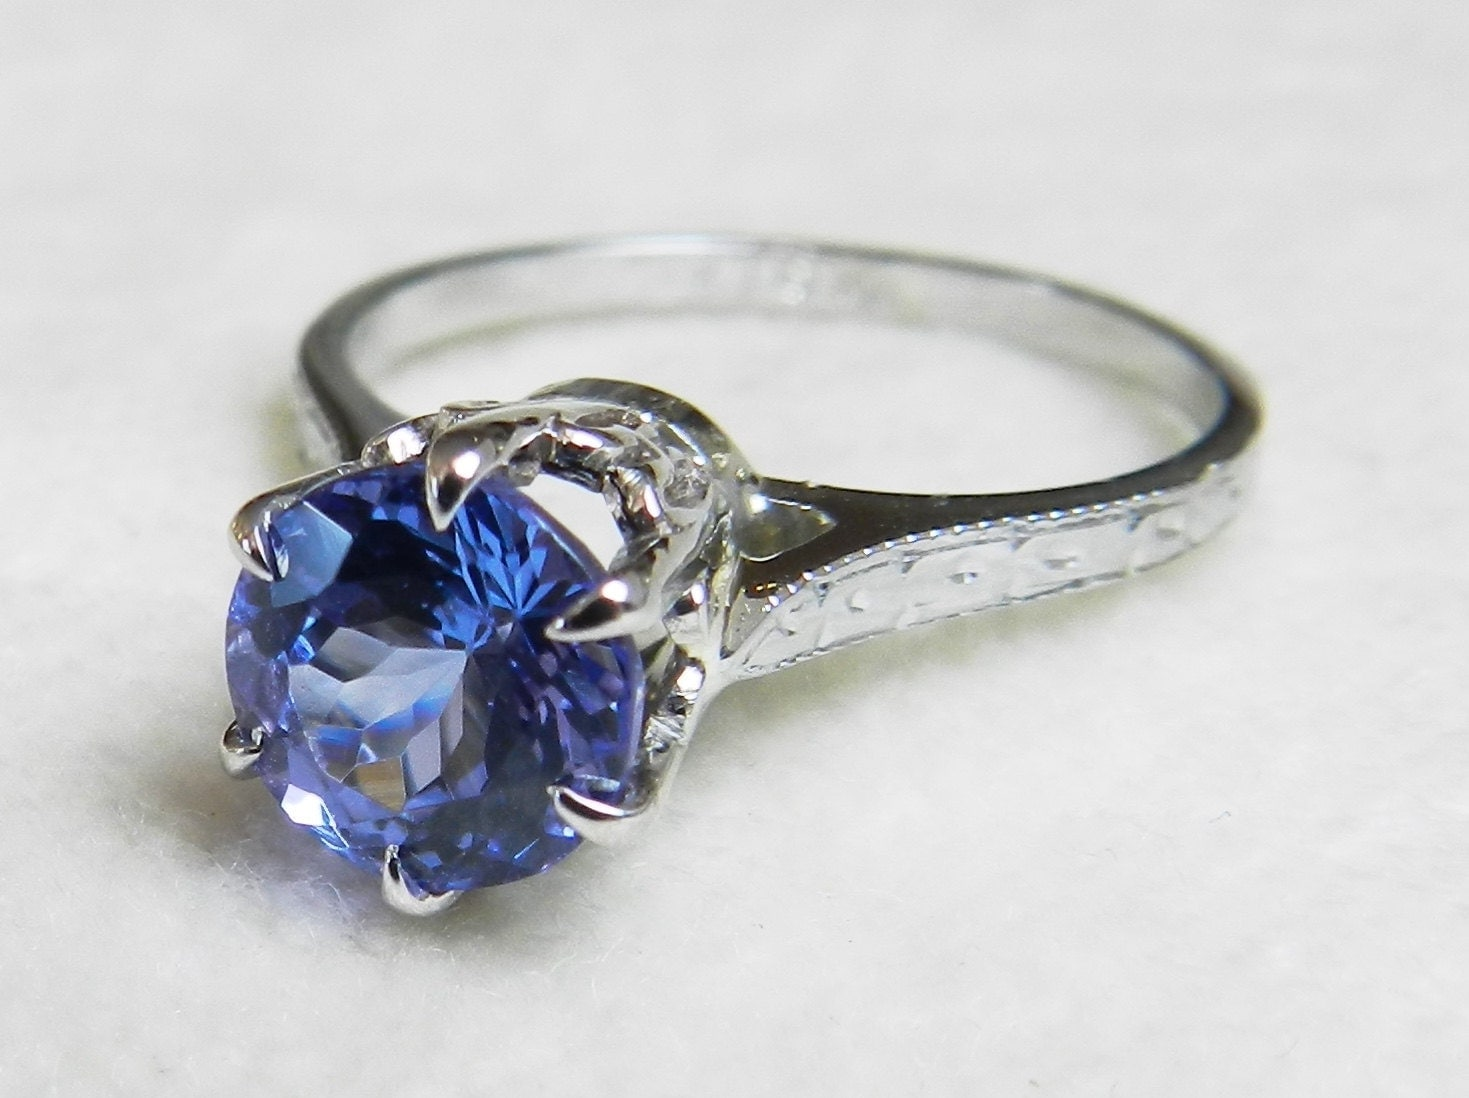 Tanzanite Engagement Ring 18K Ring Vintage Antique Engagement